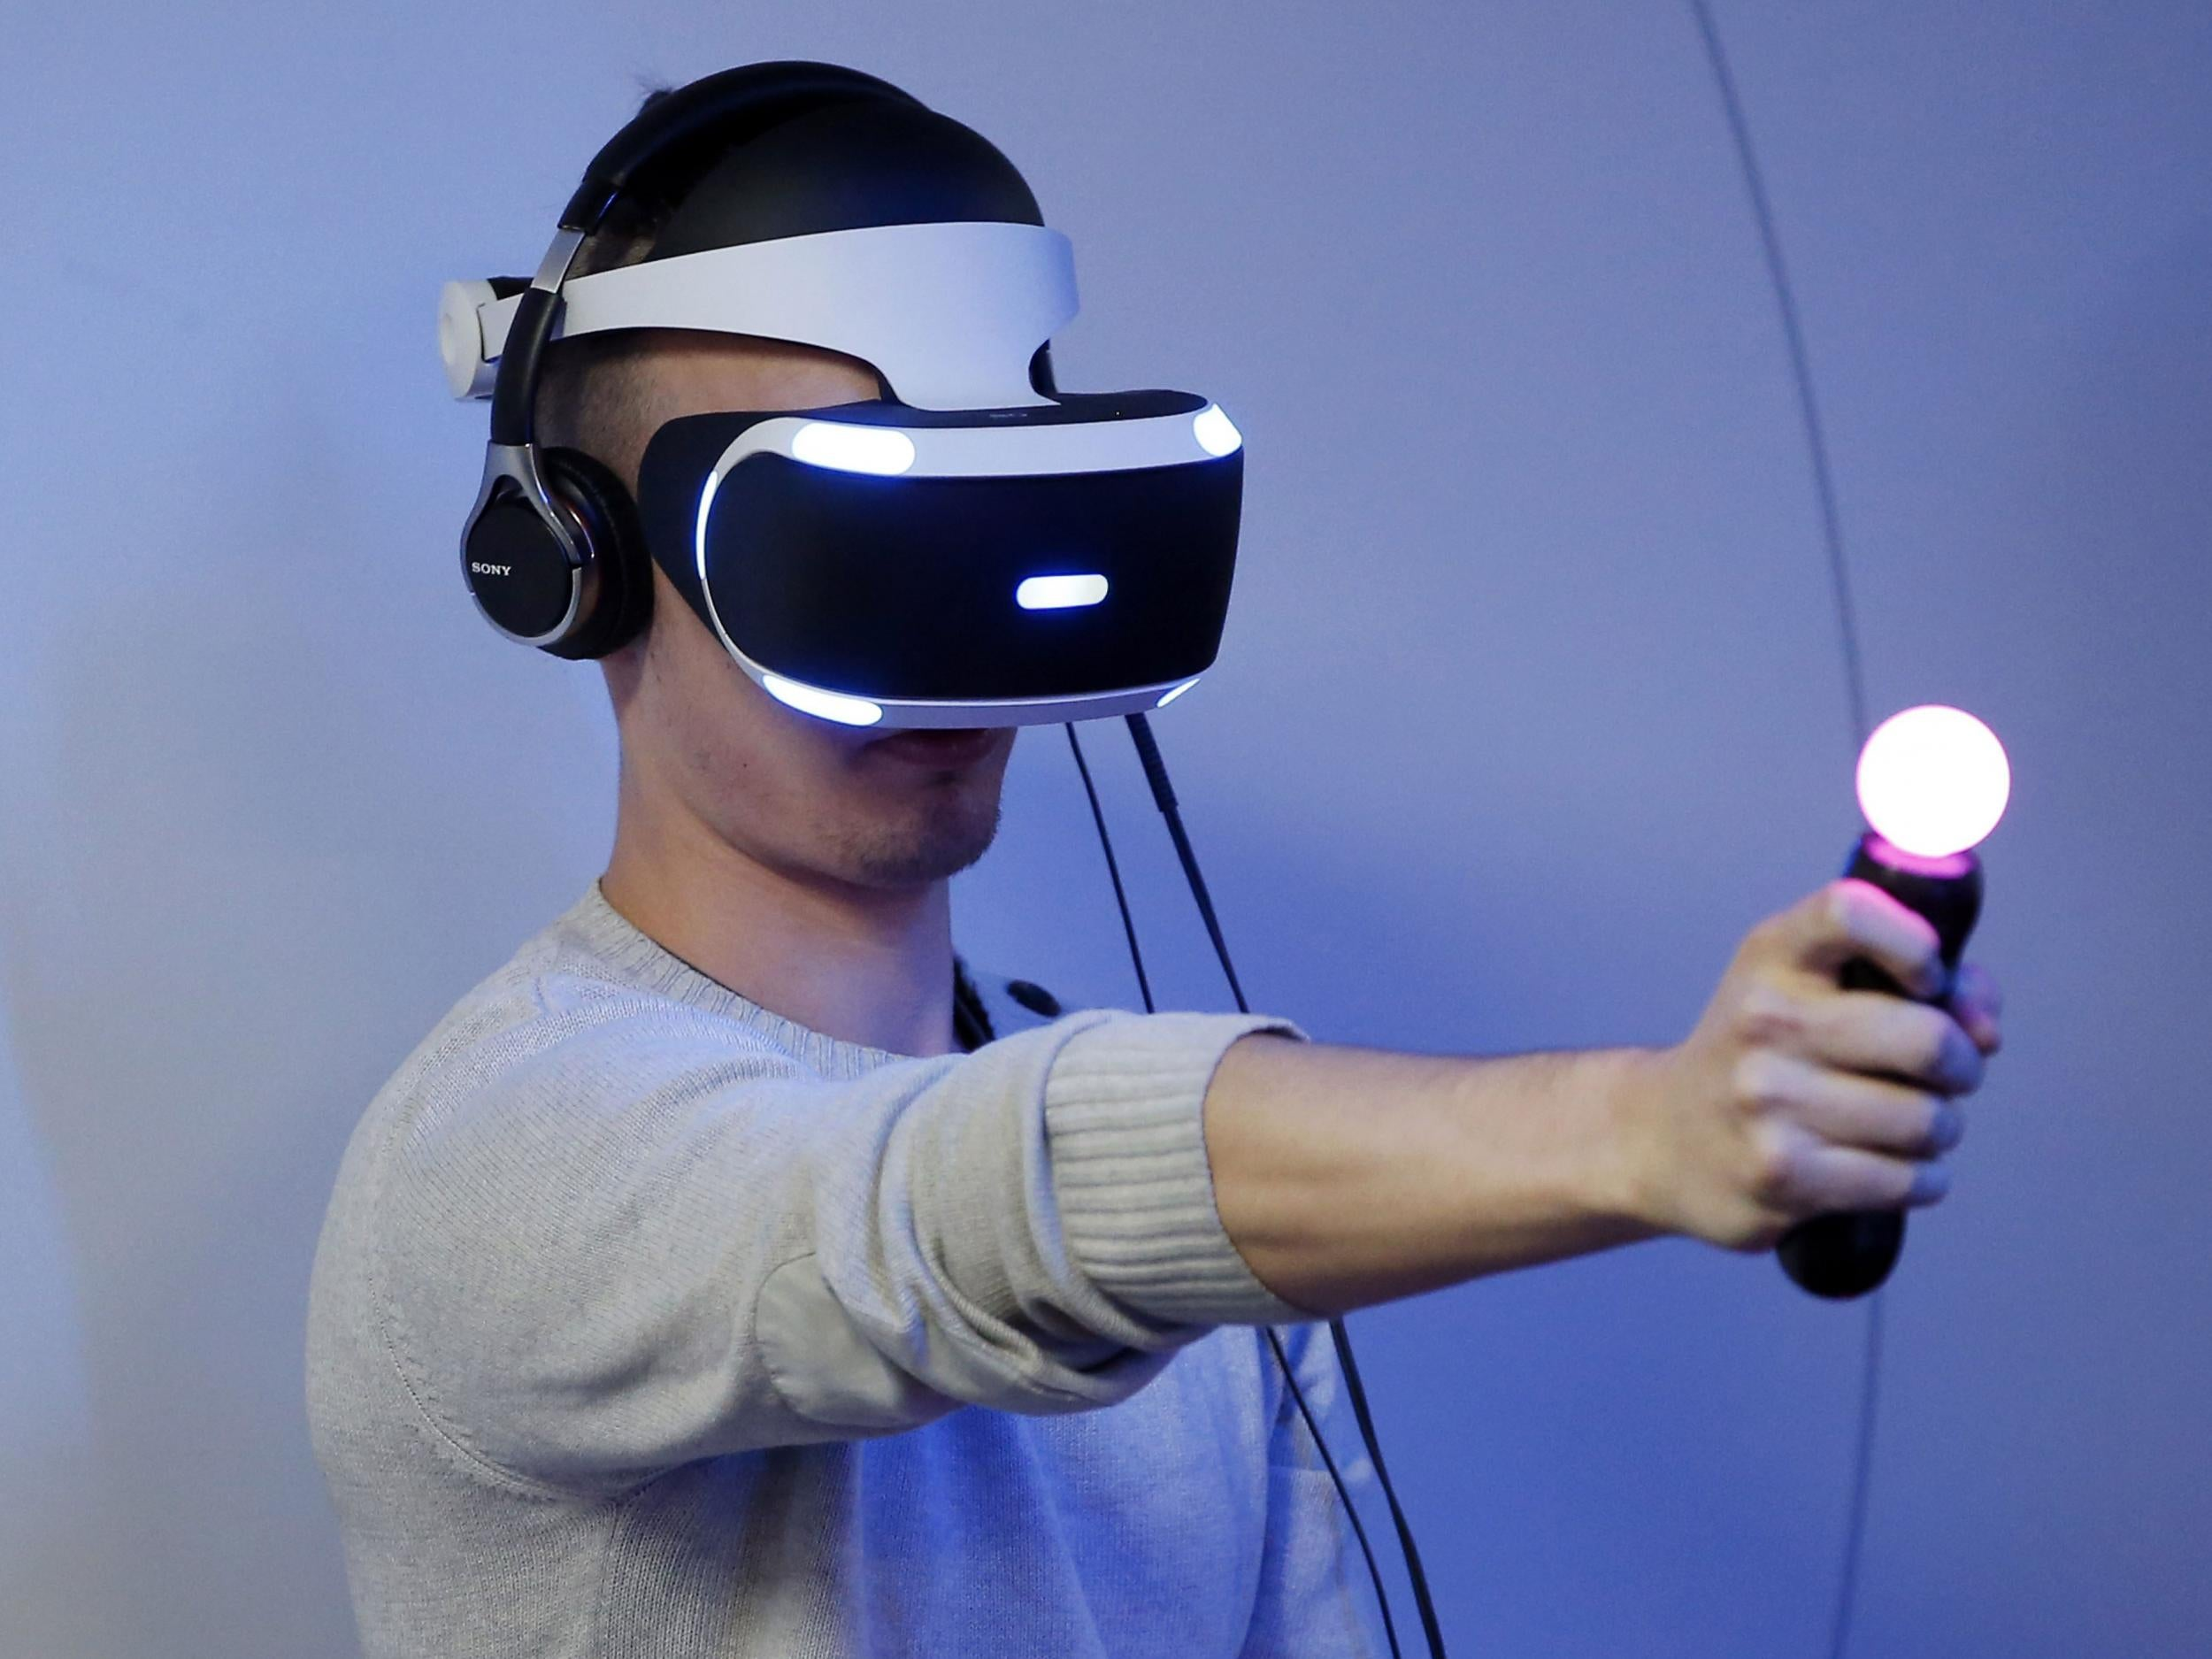 Playstation VR: Sony considering making headset compatible with PC to compete with Oculus Rift and HTC Vive